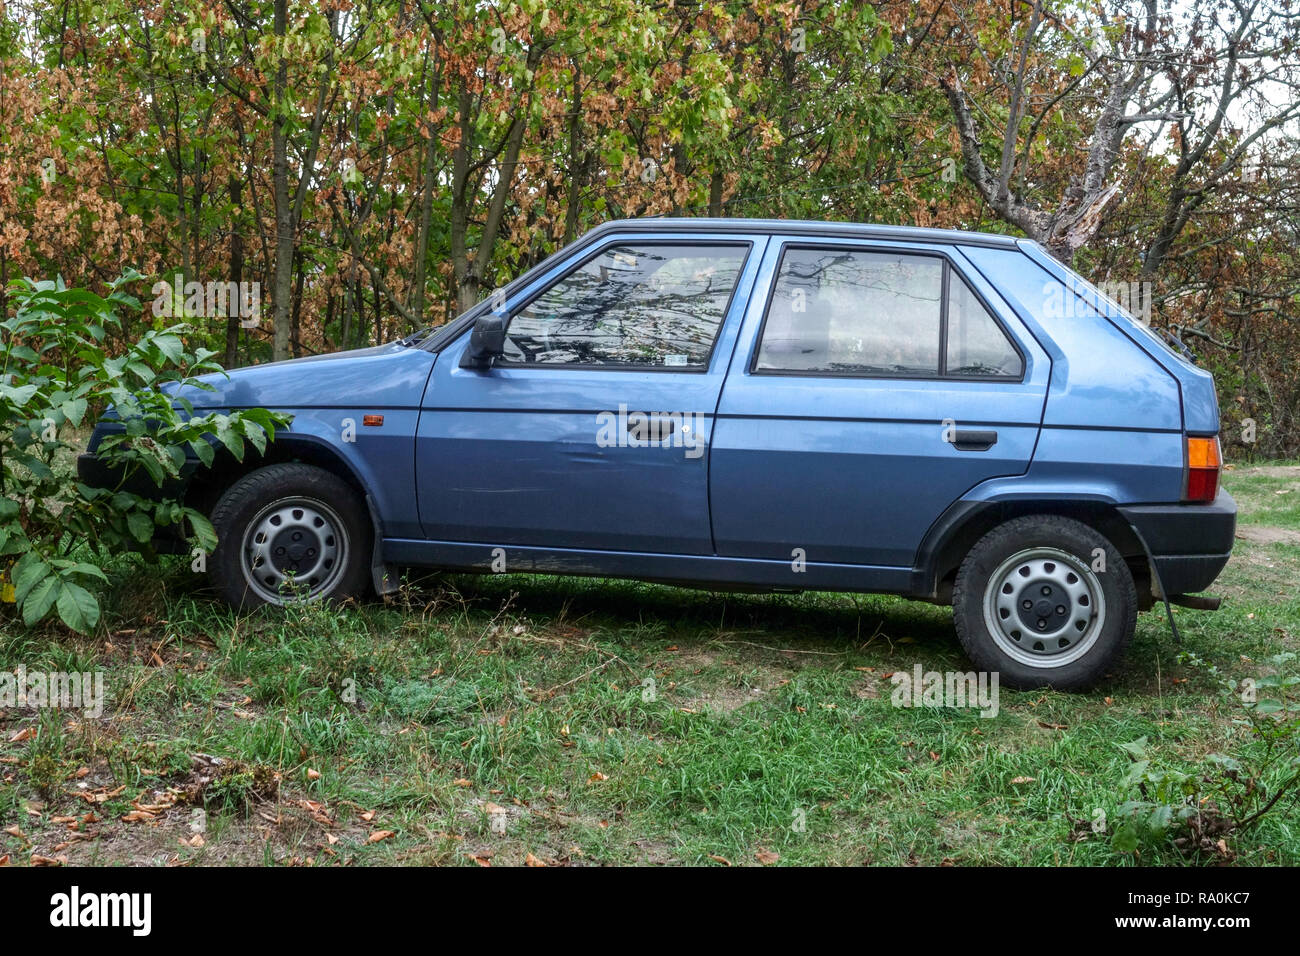 Skoda Felicia hatchback, produced from 1994 to 2001, Czech Republic - Stock Image